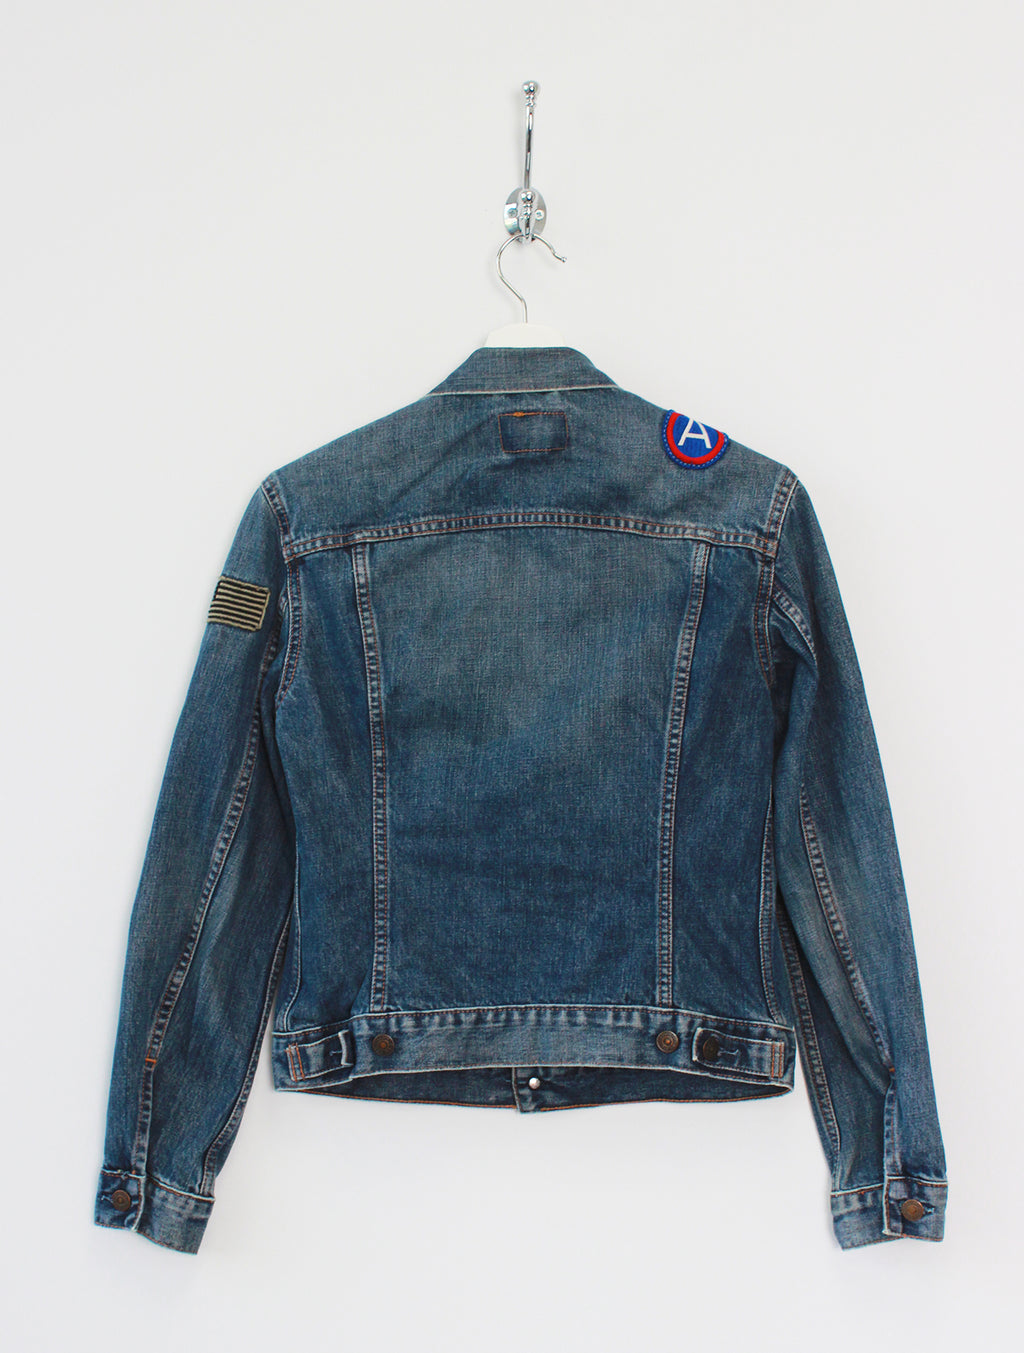 Levi's Denim Jacket (S)